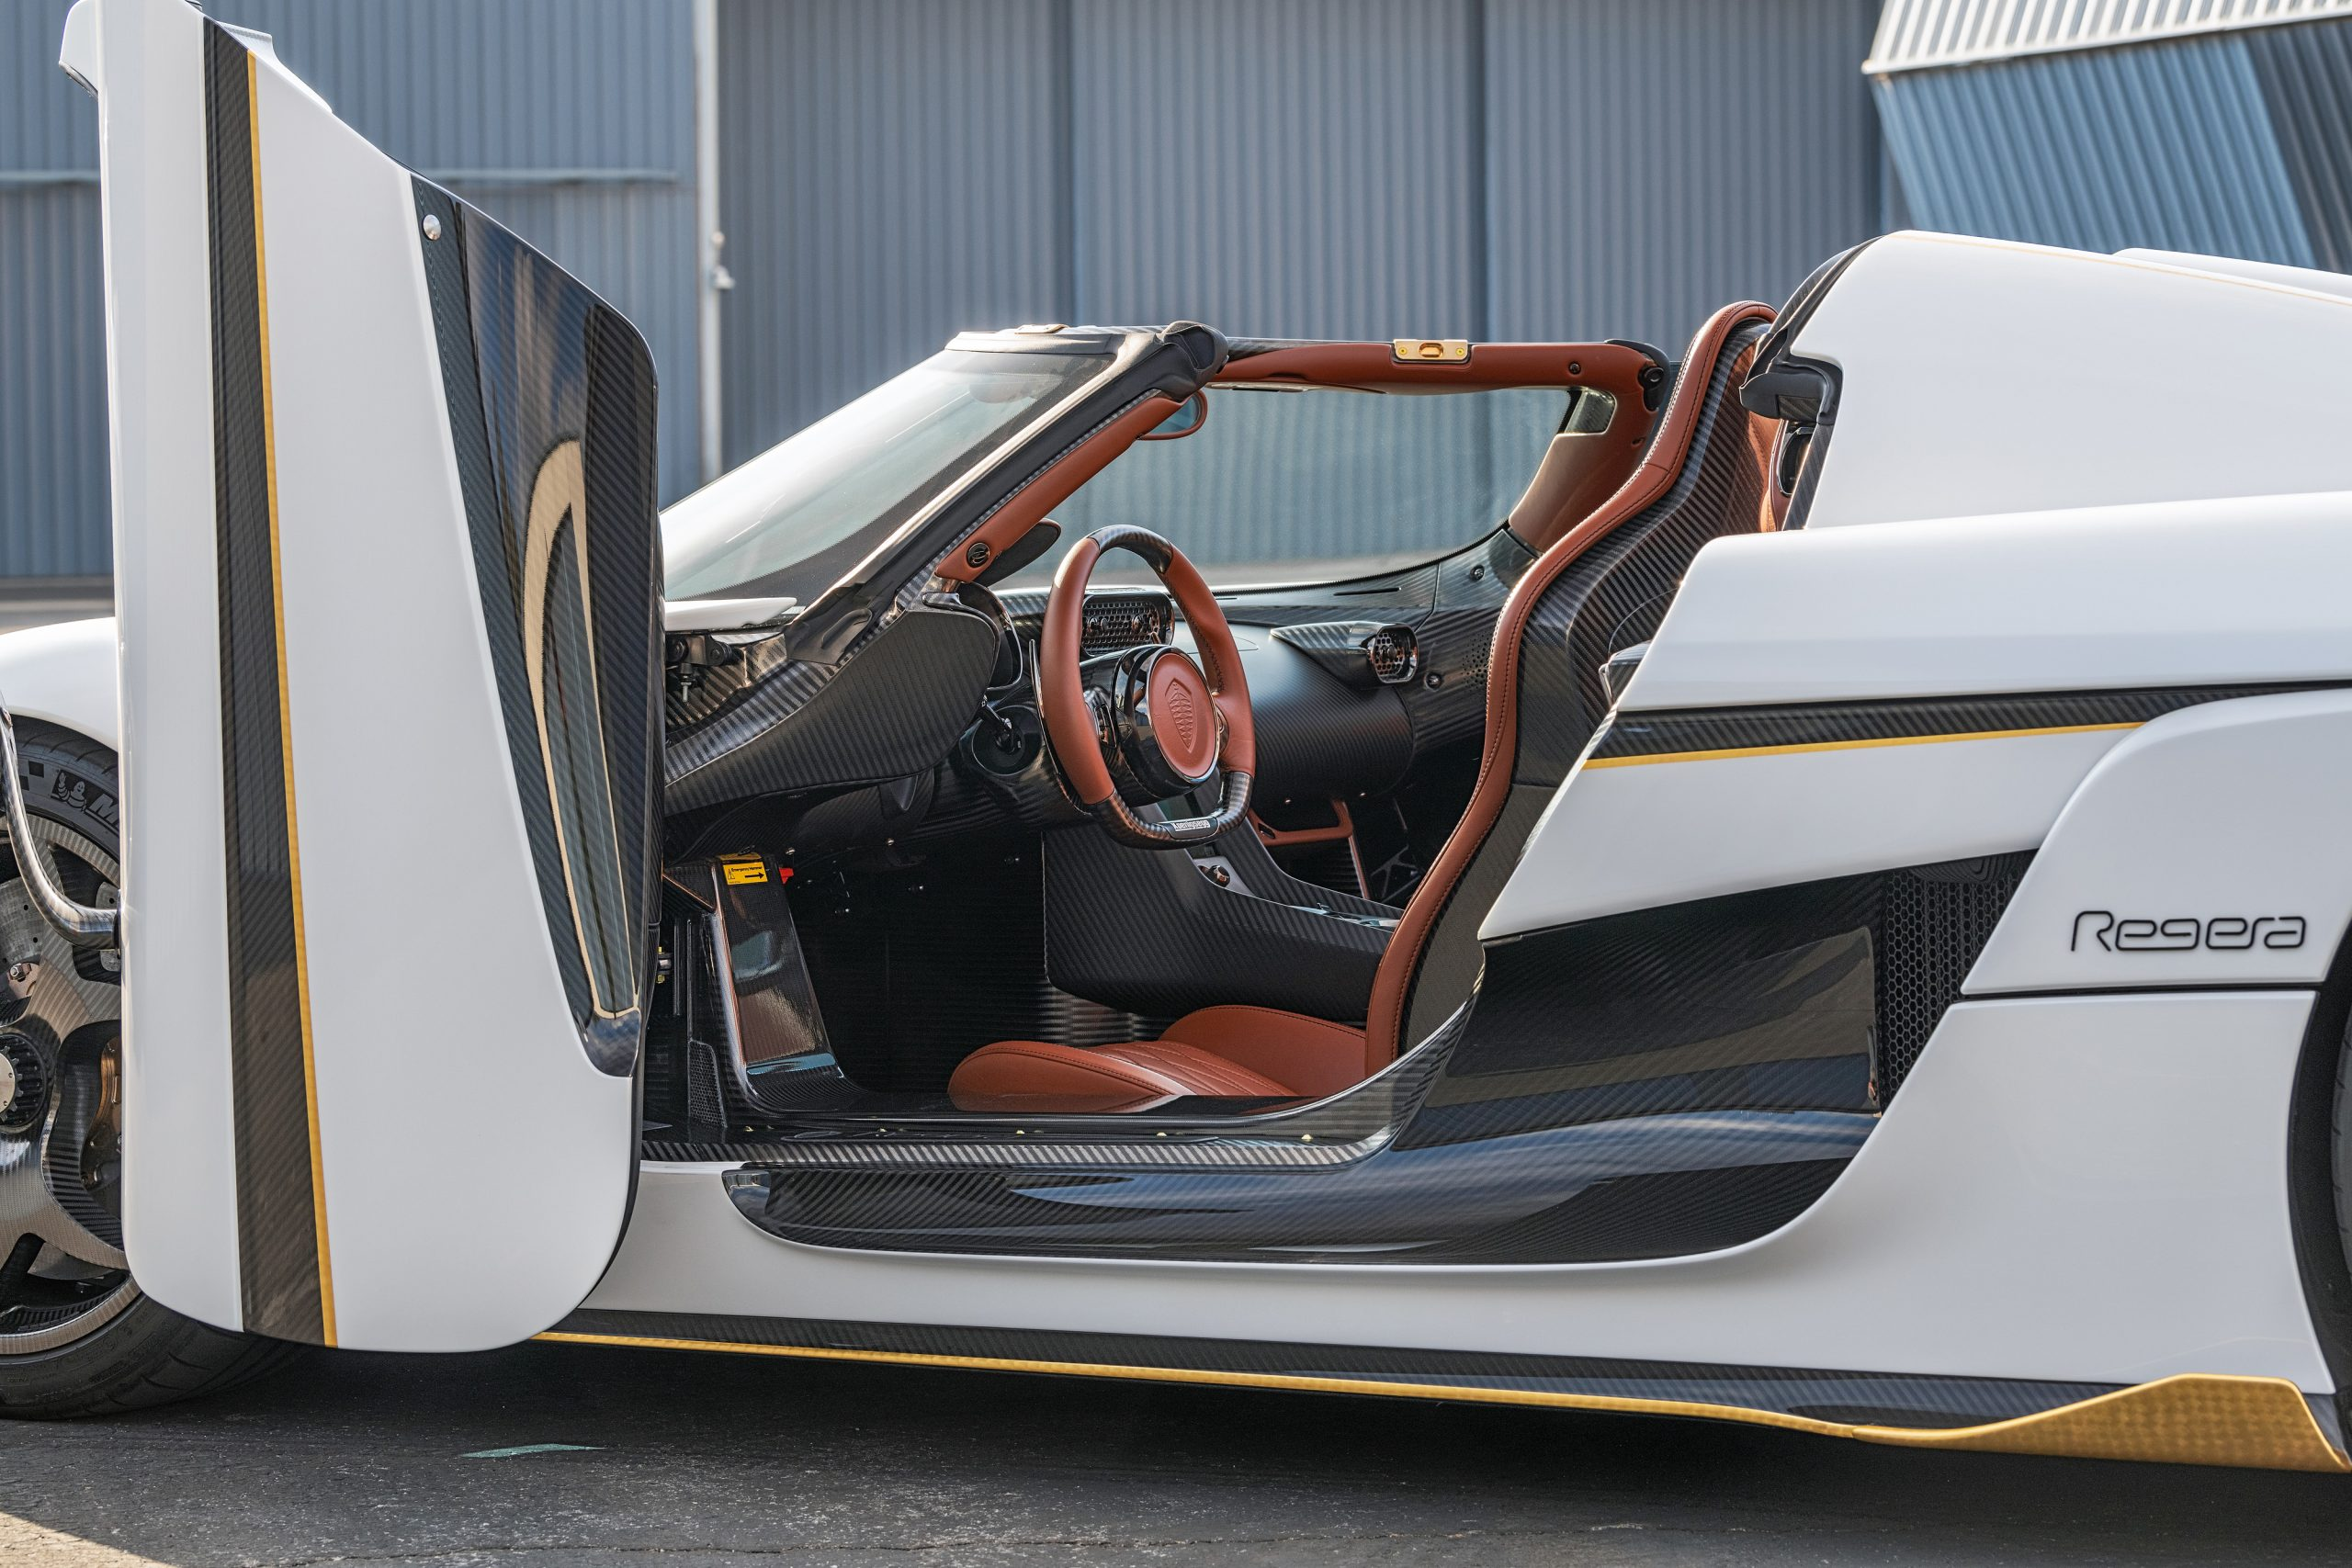 Koenigsegg Regera interior door open